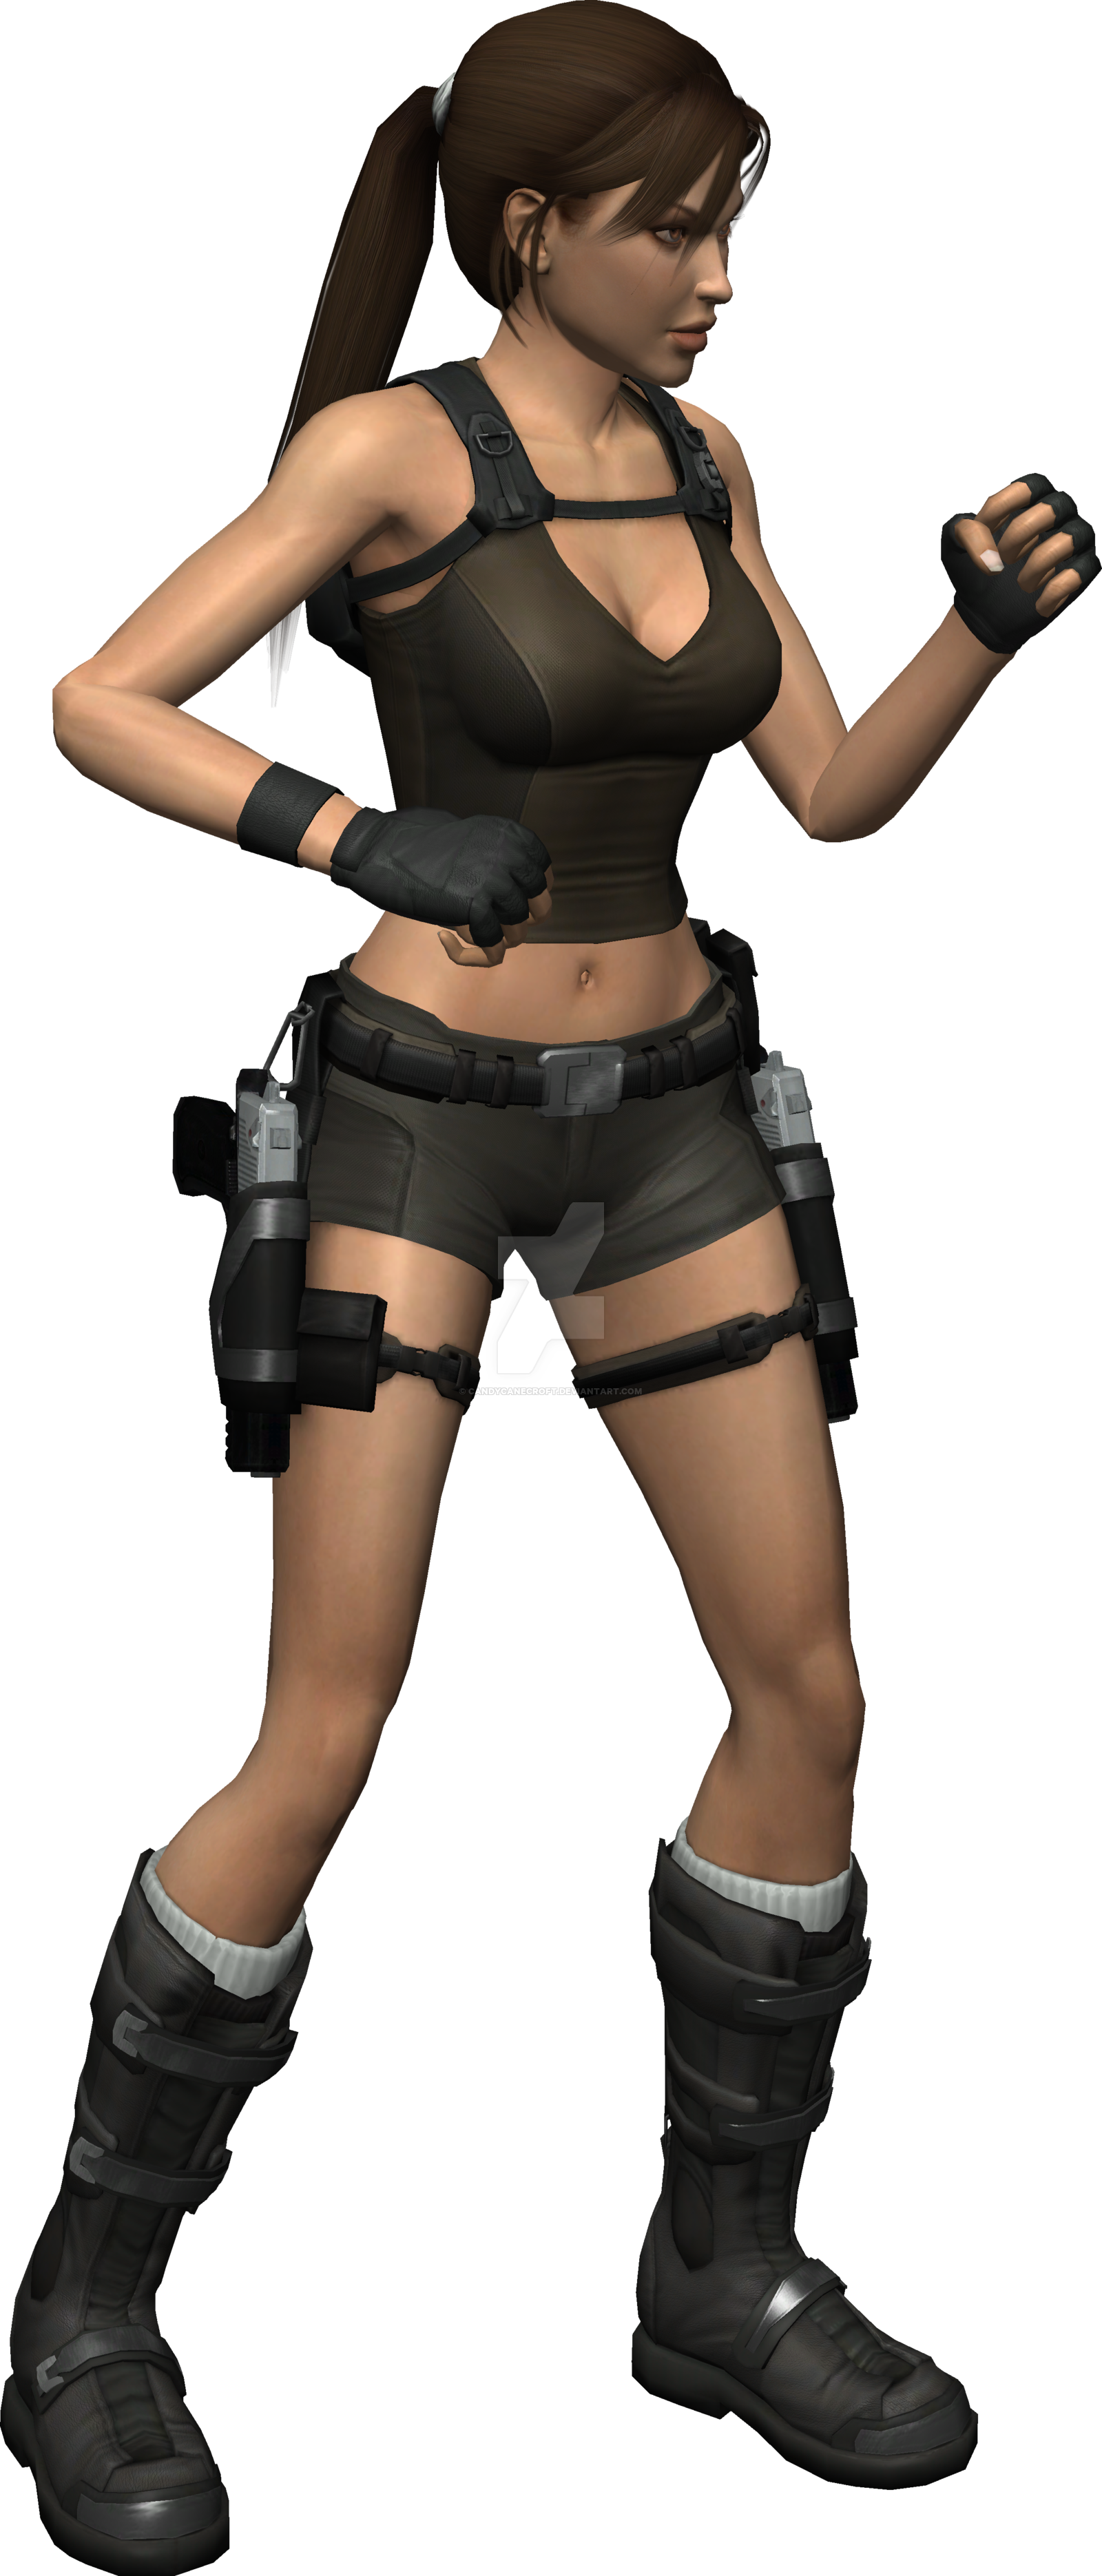 Download and use Lara Croft PNG Image